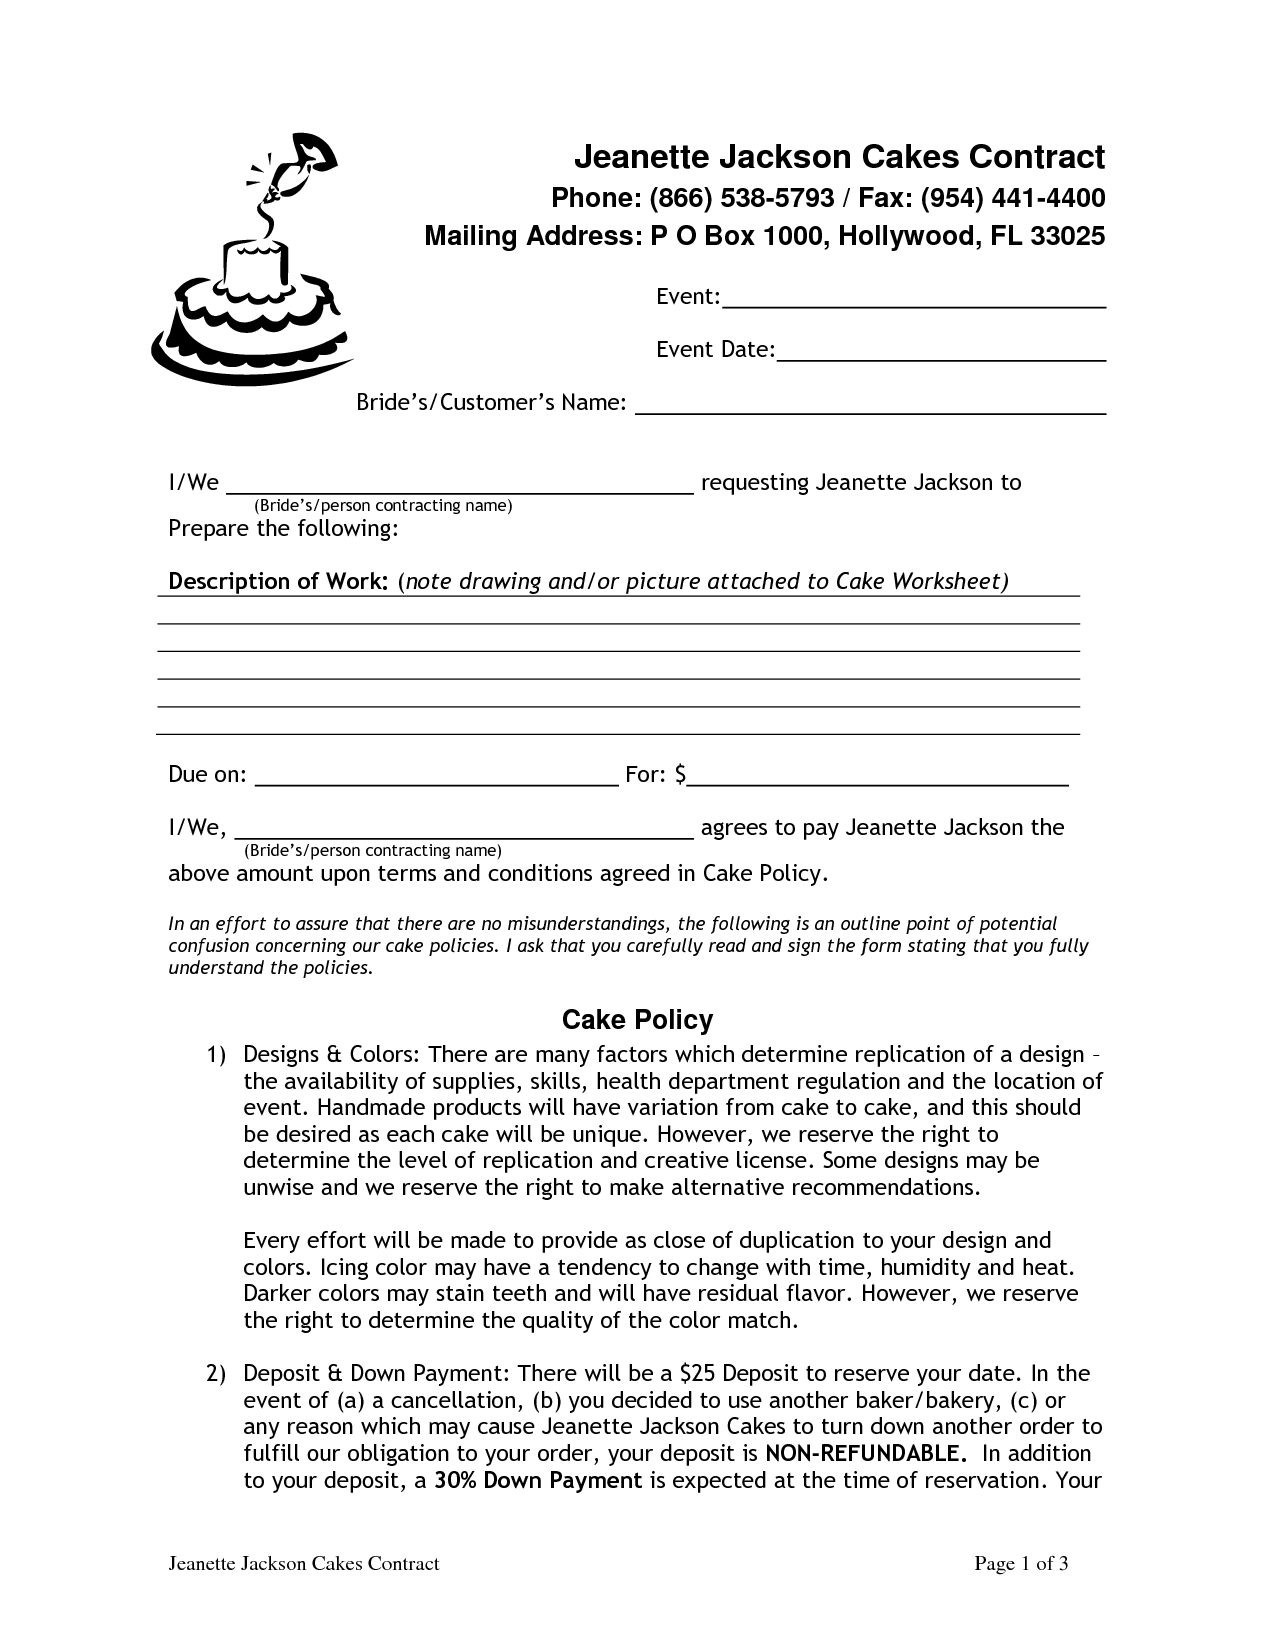 Wedding Cake Contract Pdf